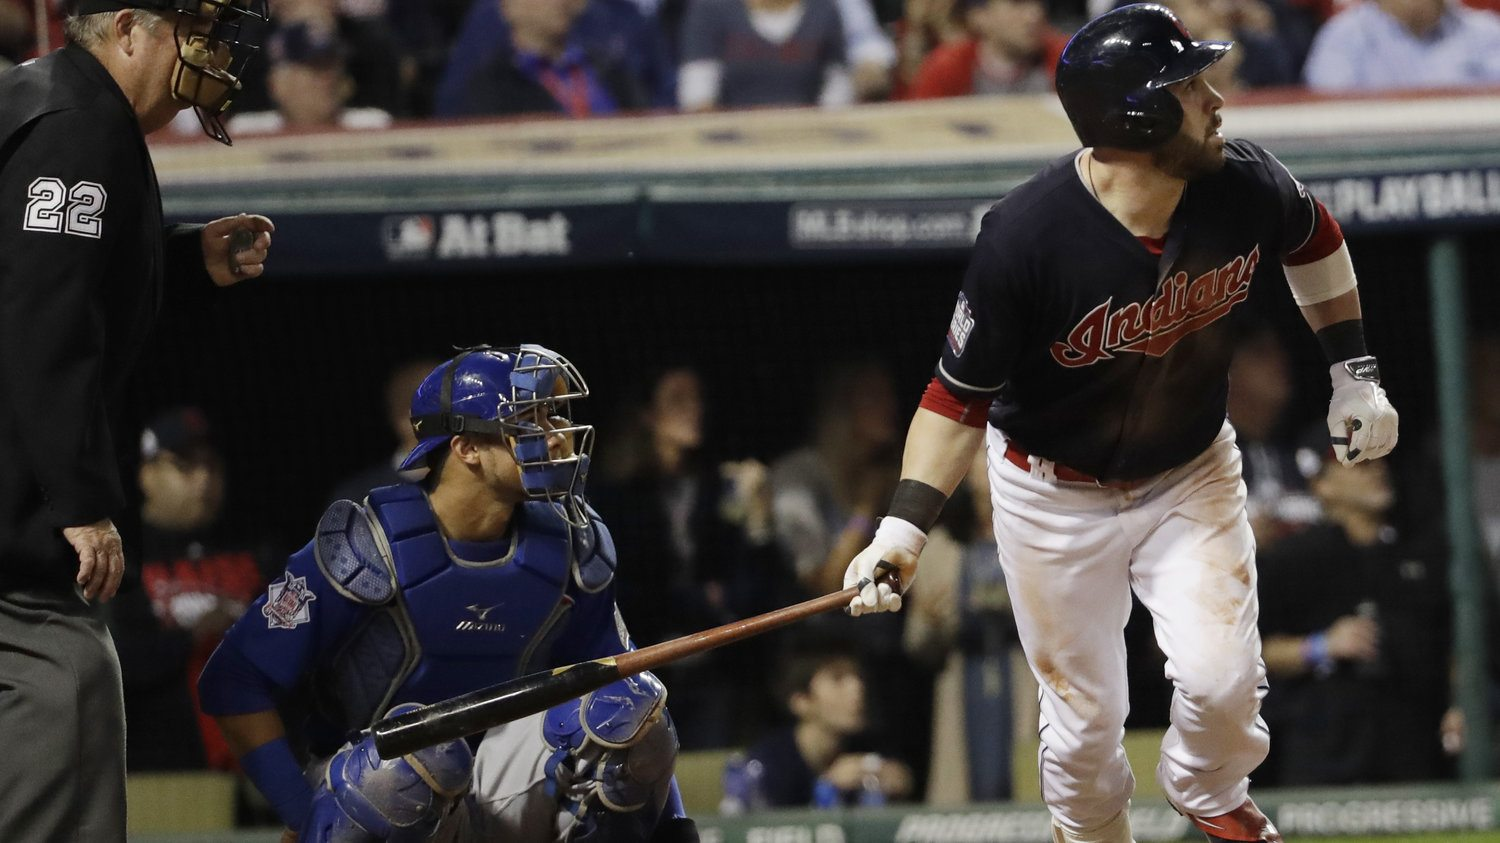 The Cleveland Indians' Jason Kipnis hits a home run during the fifth inning of Game 6 of the World Series. David J. Phillip/AP